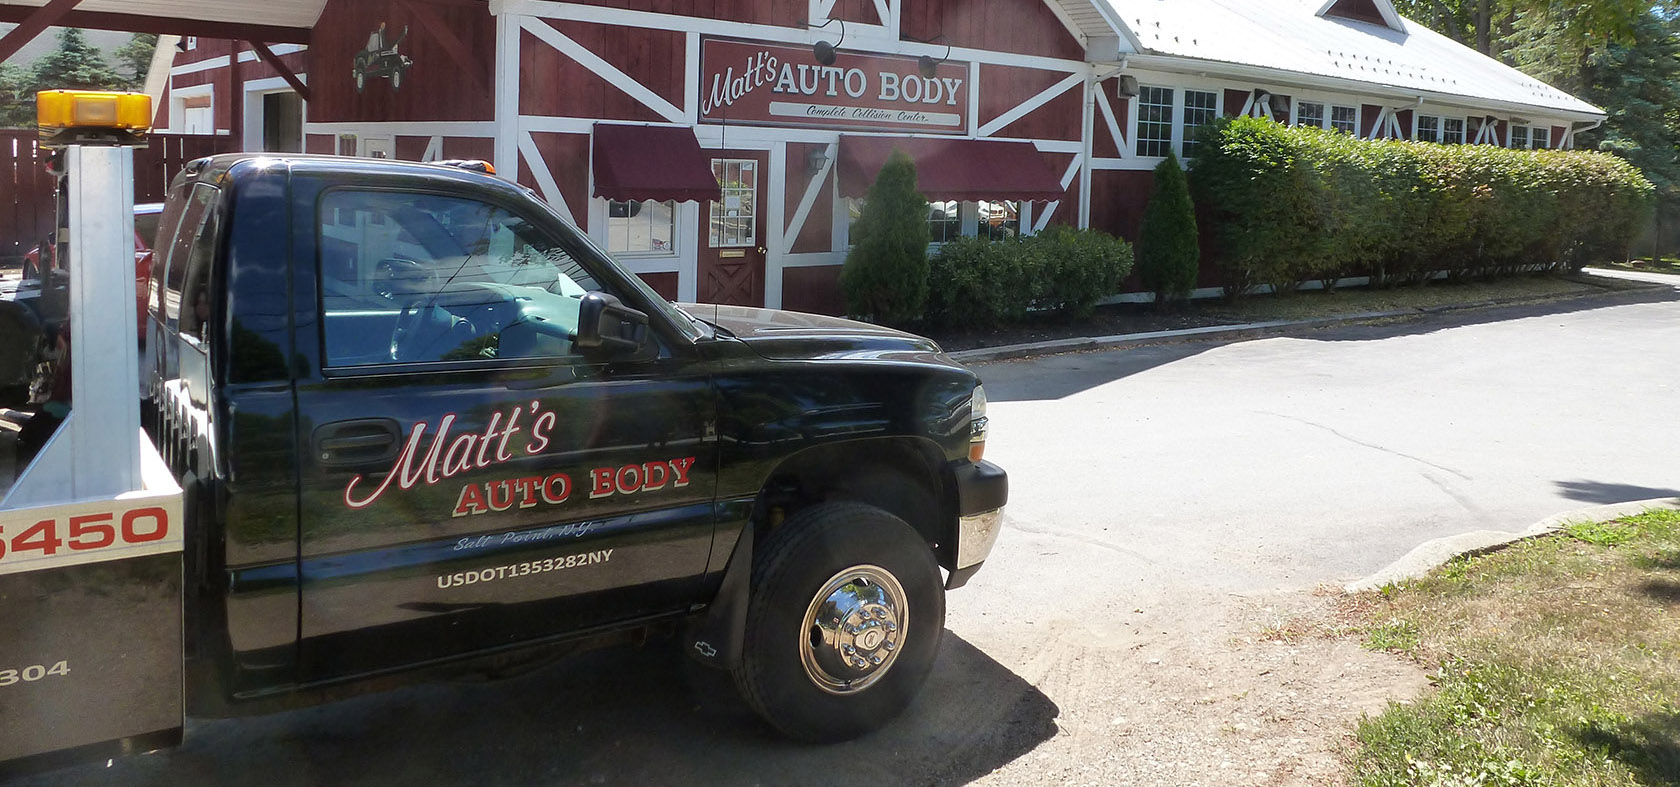 photo of Matt's Auto Body shop and tow truck